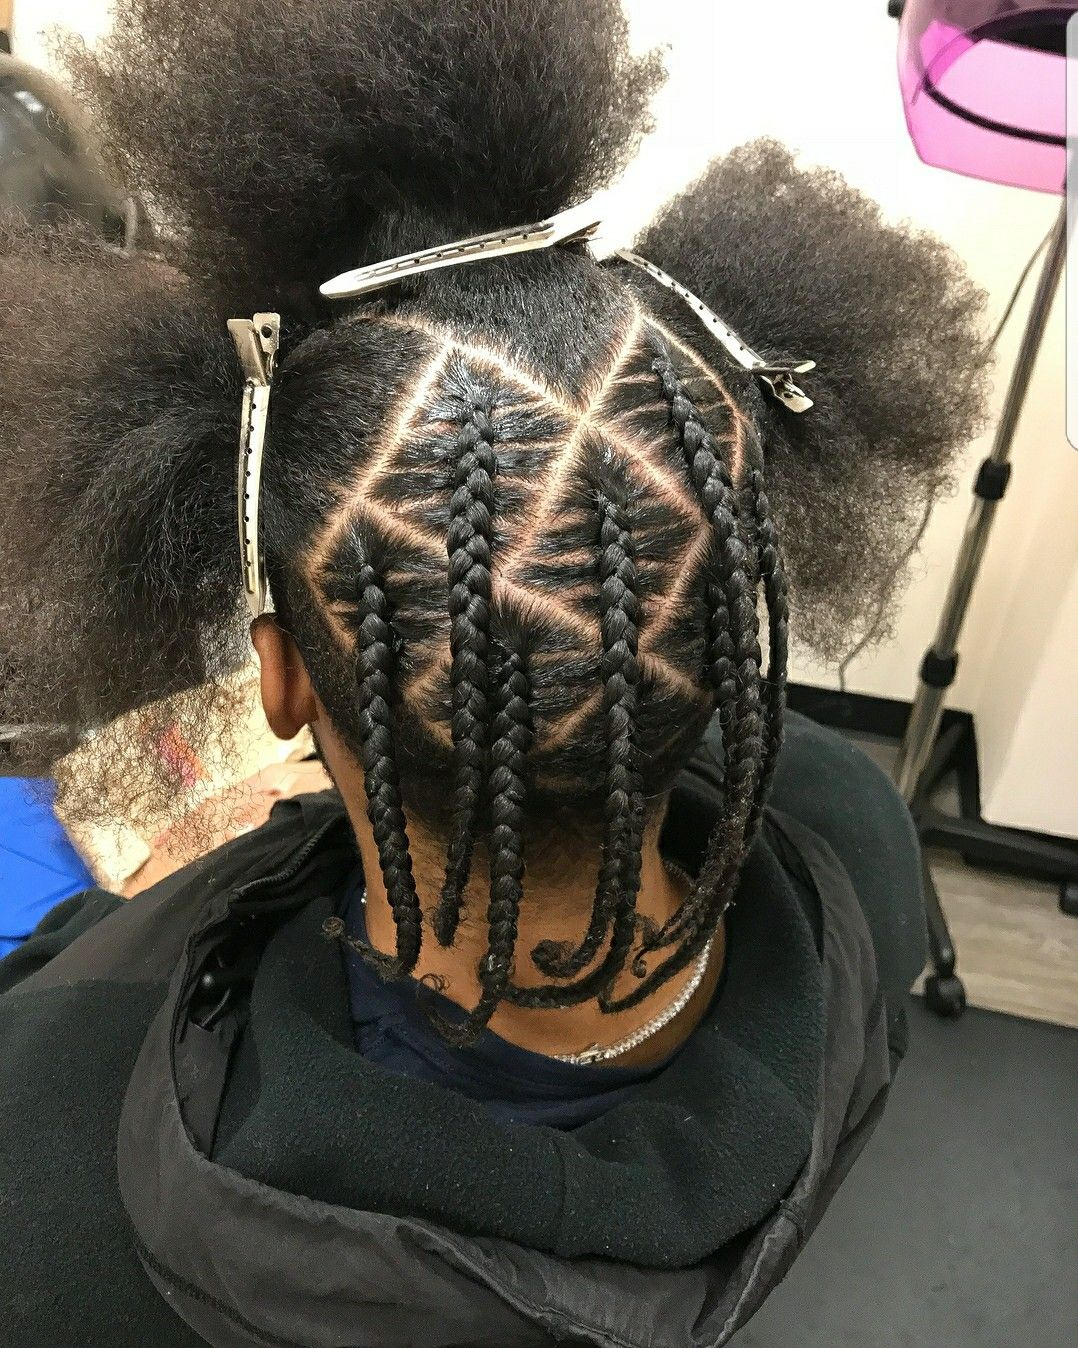 Pin By A Farrar On Kids Hairstyles Braids For Boys Kids Braided Hairstyles Boy Braids Hairstyles